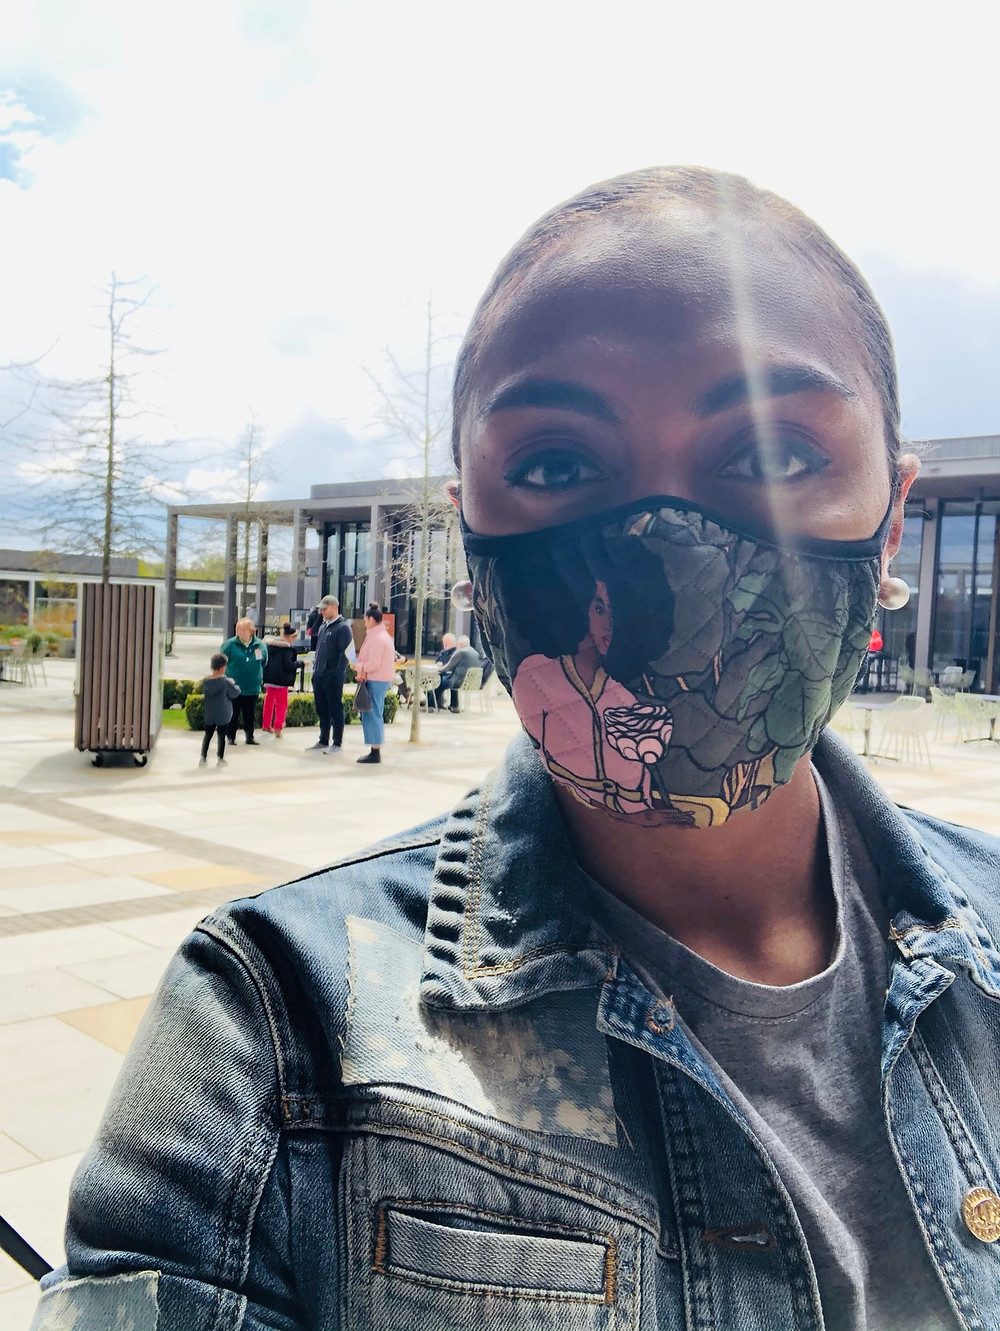 Isabella is facing the camera whilst wearing a mask with the image of a black woman holding flowers. She is wearing a grey t-shirt and a blue denim jacket.